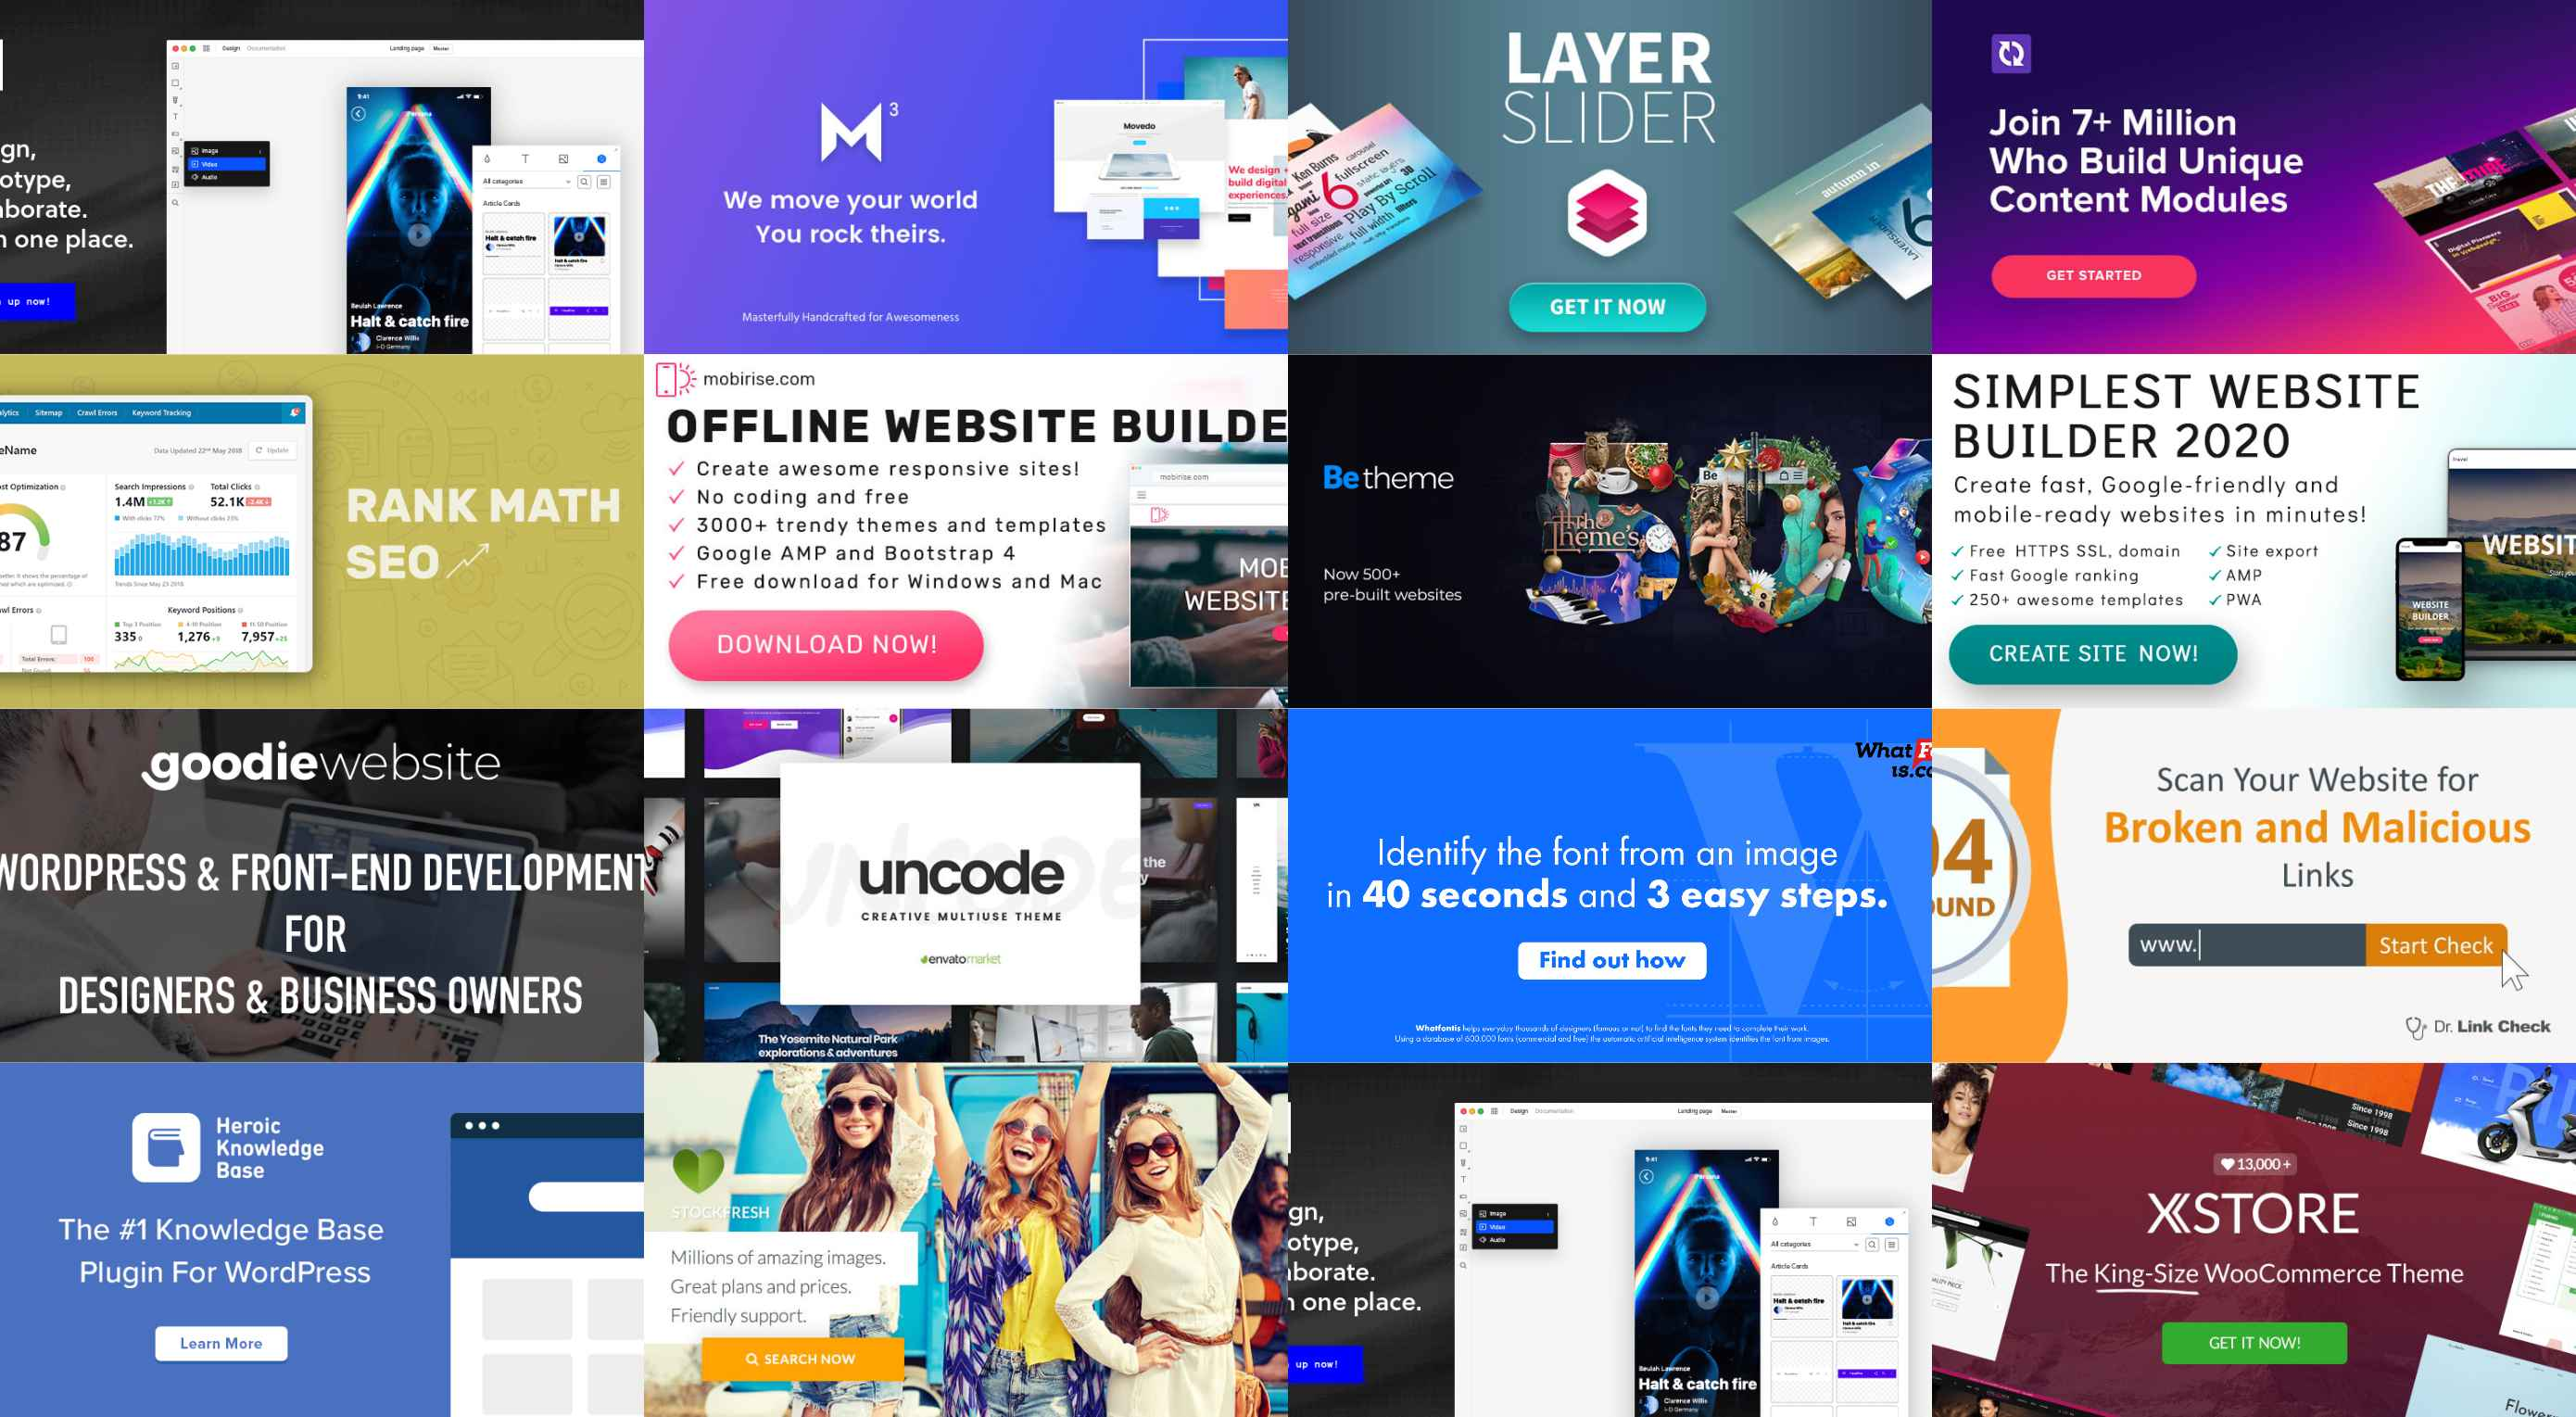 15 Useful Tools and Services for Designers and Agencies